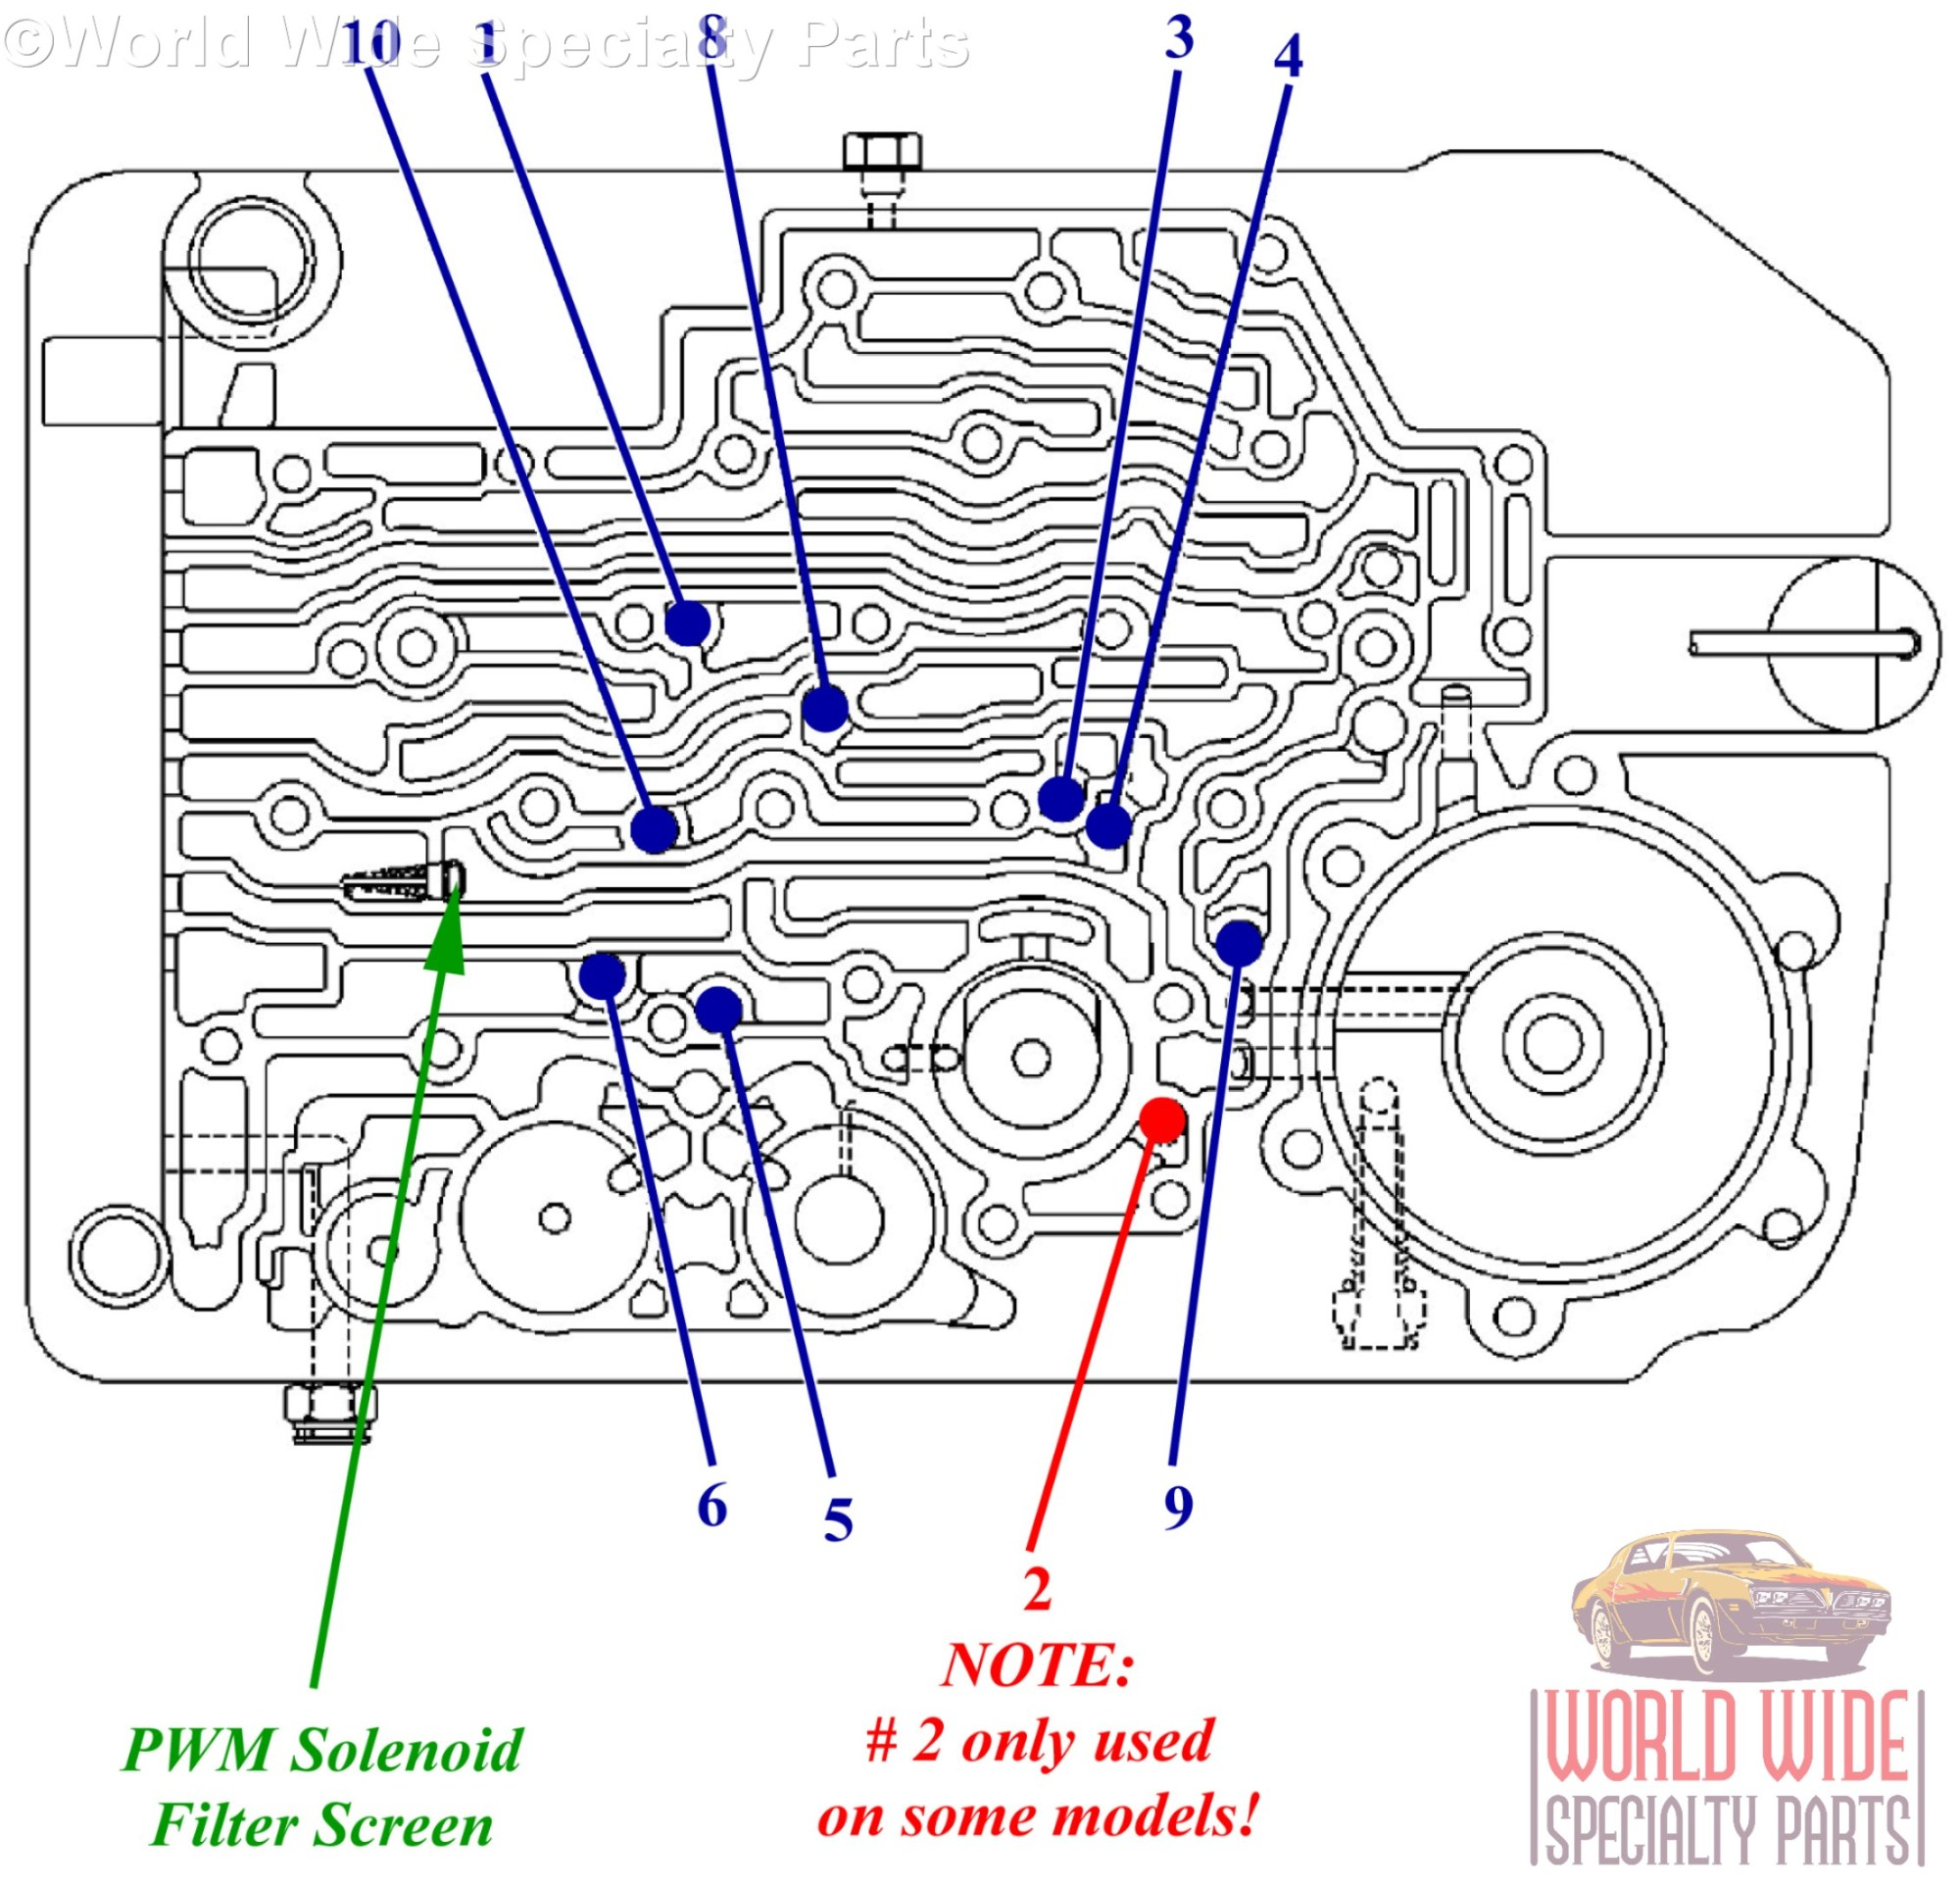 hight resolution of wiring diagram 4l80e transmission solenoid 8 19 combatarms game de u20224l80e automatic reverse lockout solenoid